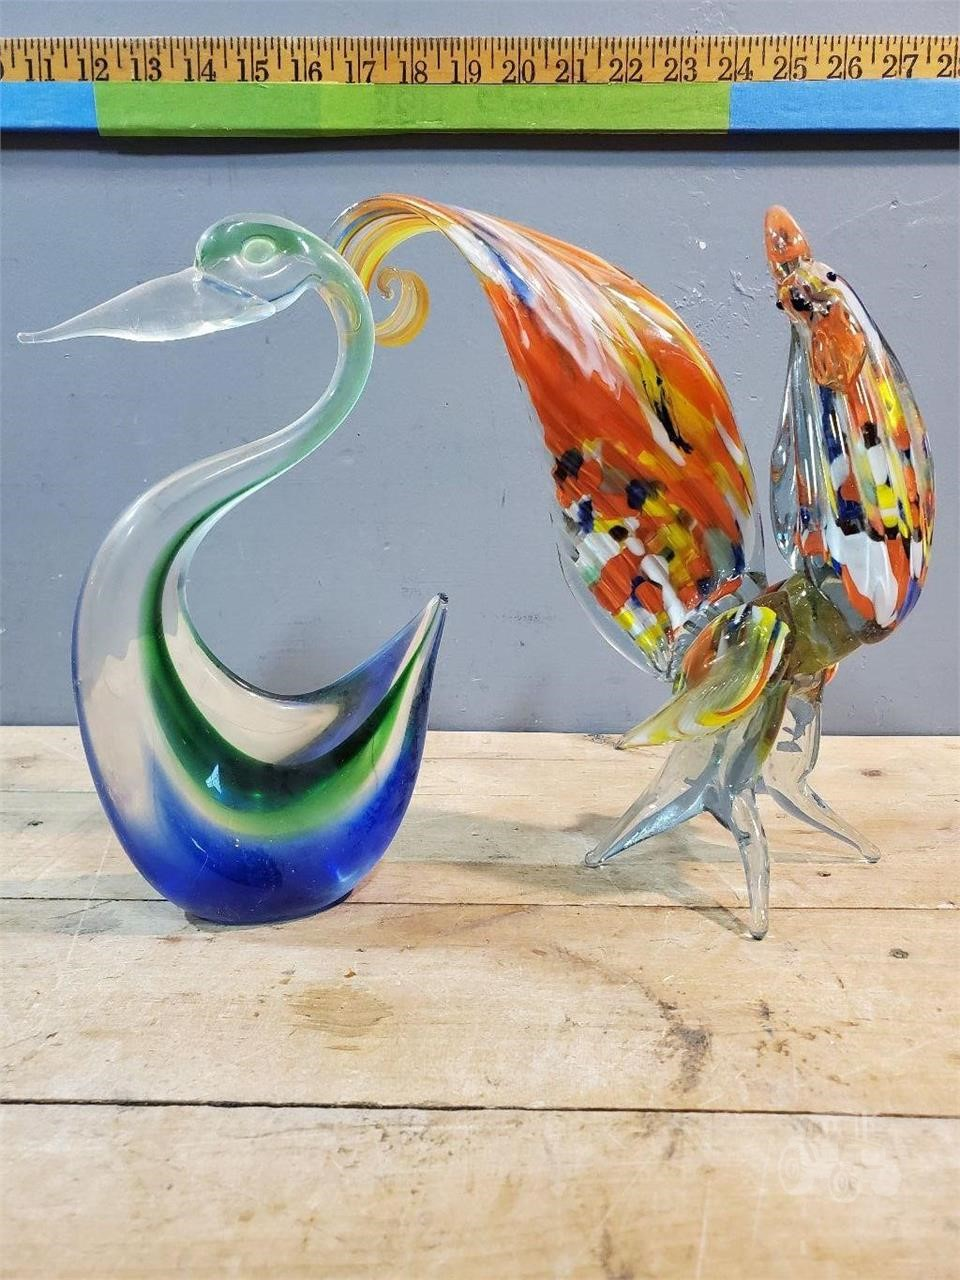 Hand Blown Glass Pelican Rooster Other Items For Sale 1 Listings Tractorhouse Com Page 1 Of 1